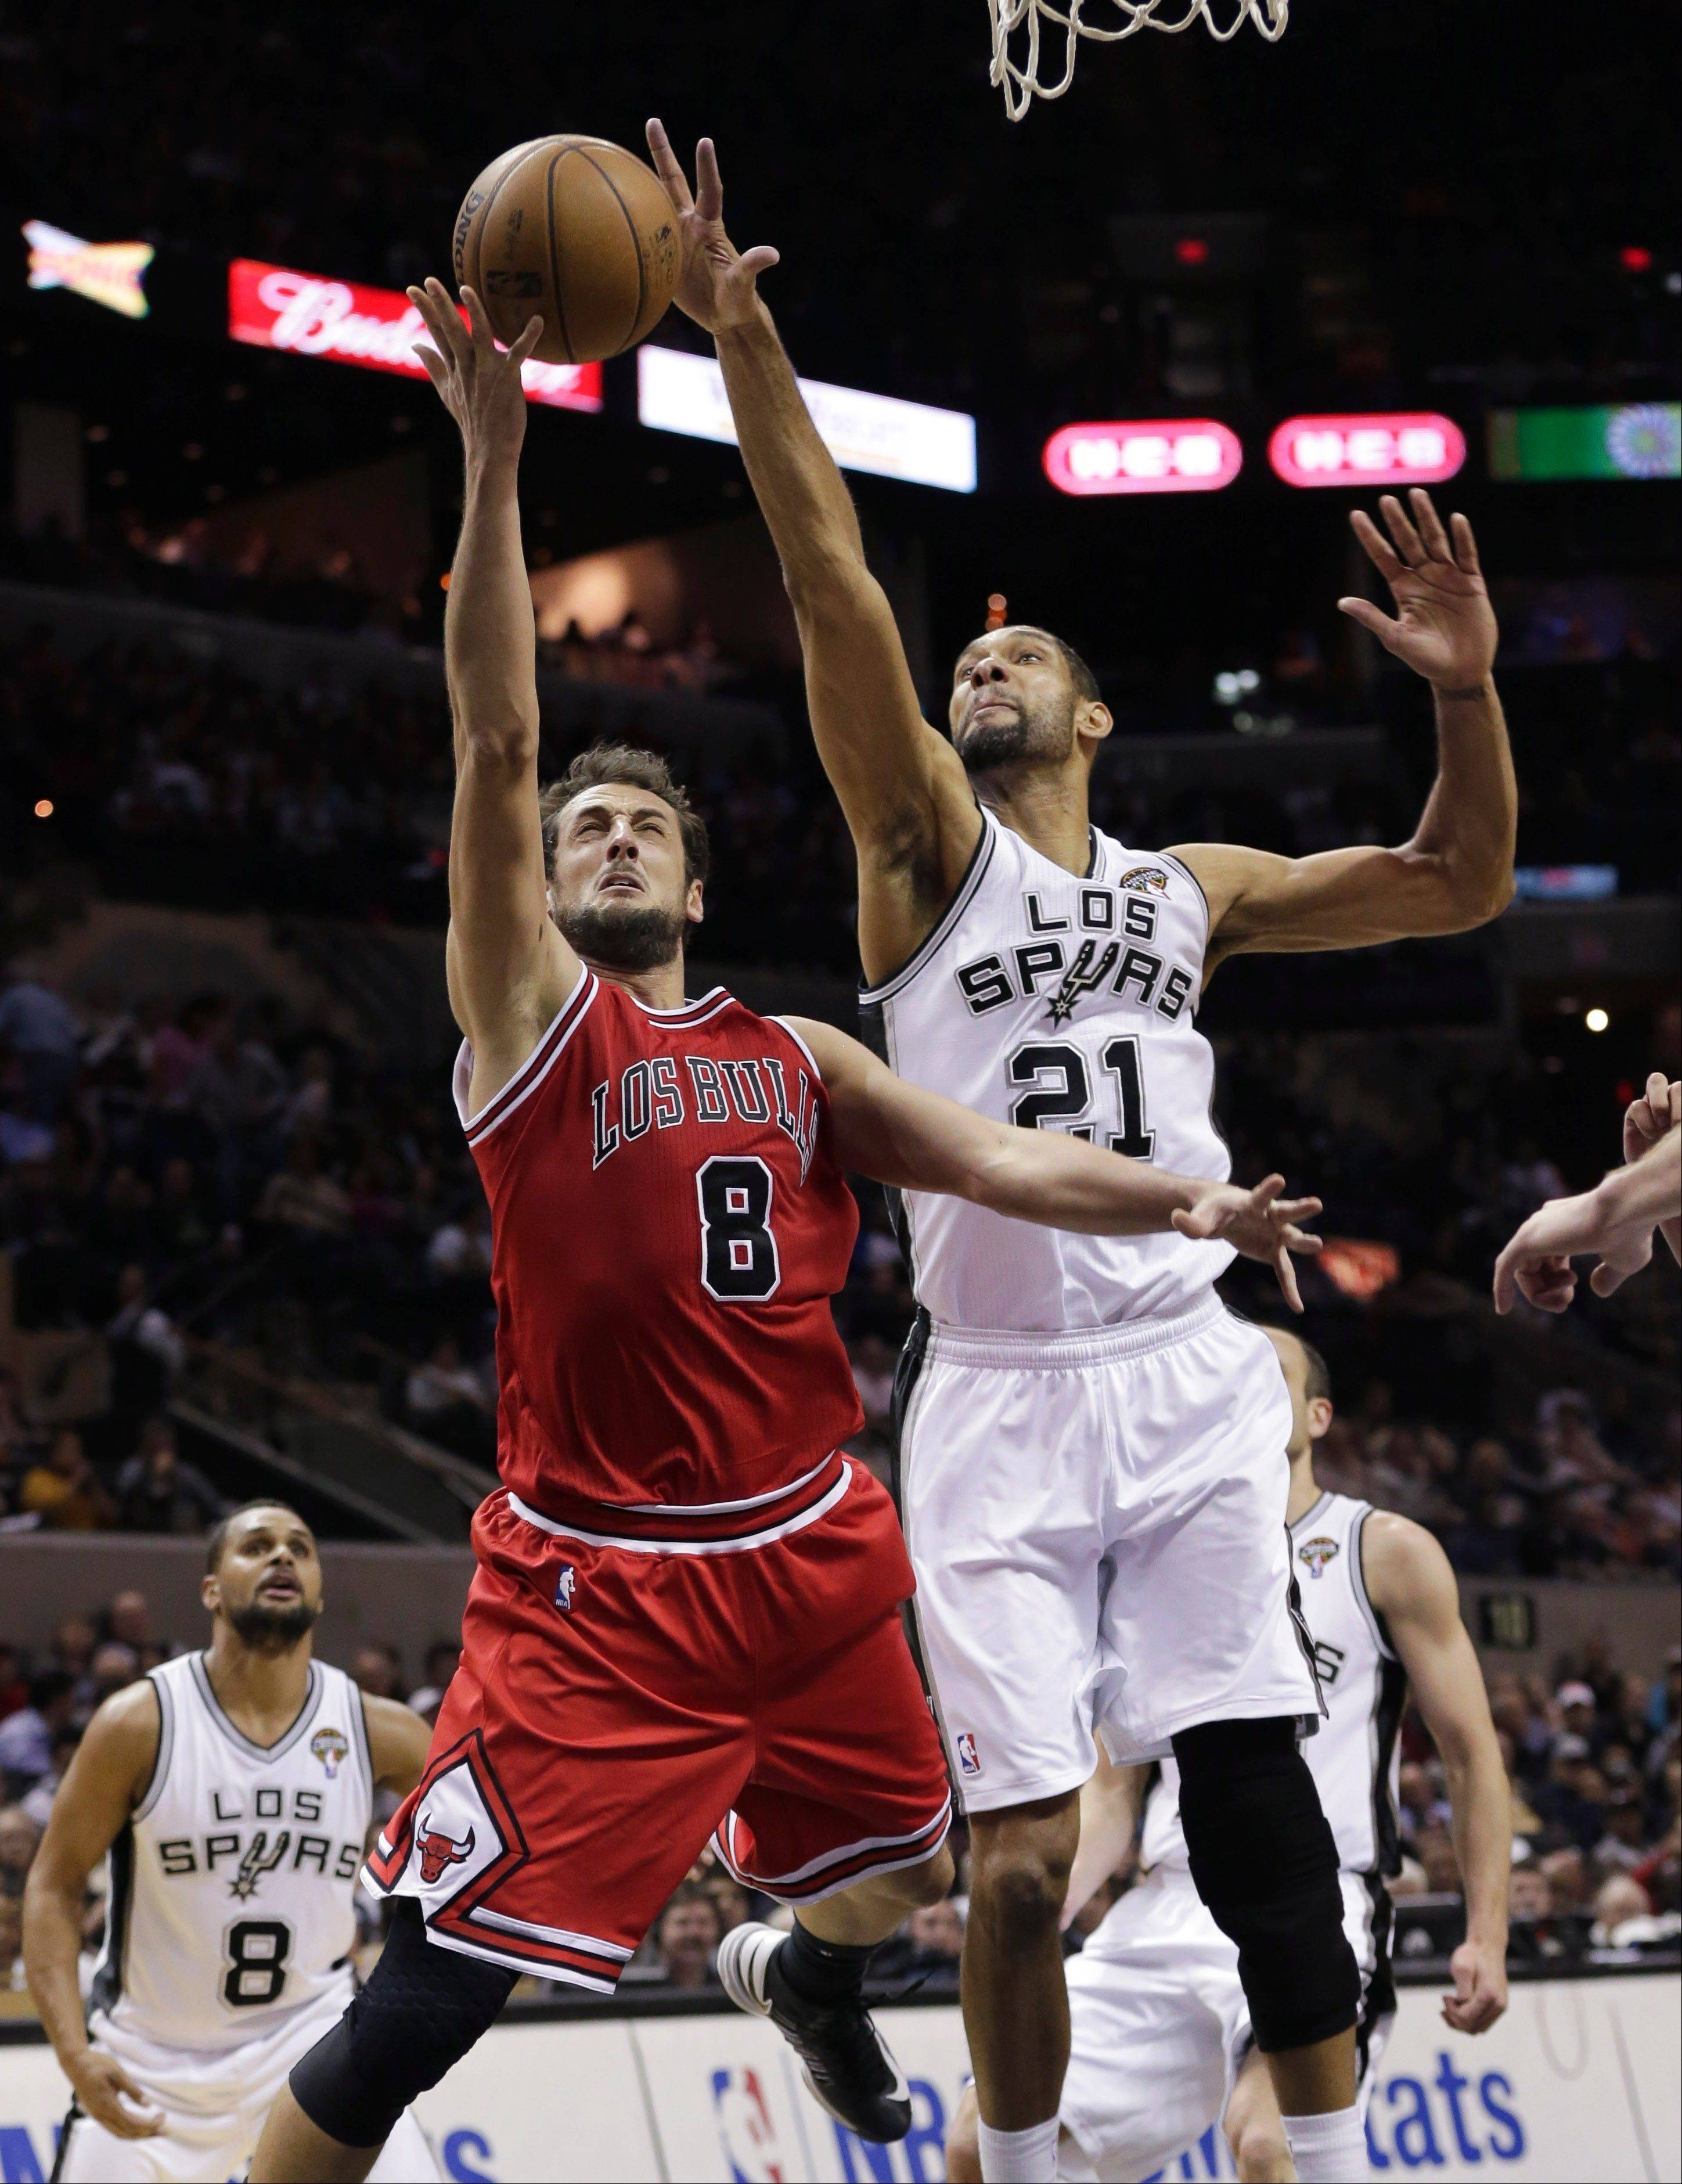 Chicago Bulls' Marco Belinelli (8) drives to the basket past San Antonio Spurs' Tim Duncan (21) during the second half of an NBA basketball game on Wednesday, March 6, 2013, in San Antonio. San Antonio won 101-83. (AP Photo/Eric Gay)